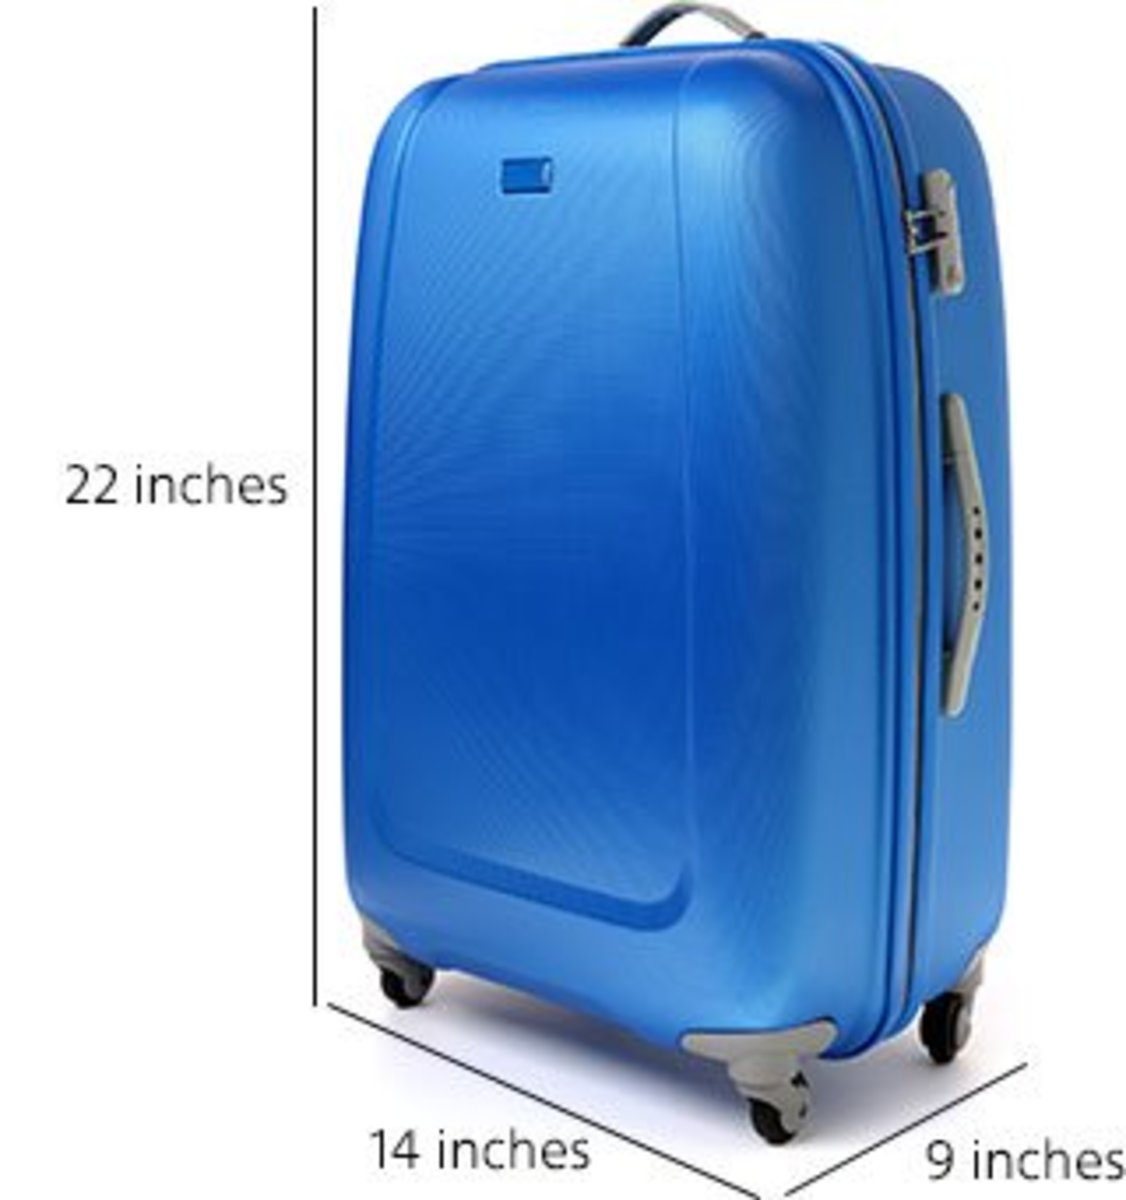 A travel industry standard sized carry on bag will fit in the overhead bins on the Greyhound bus.